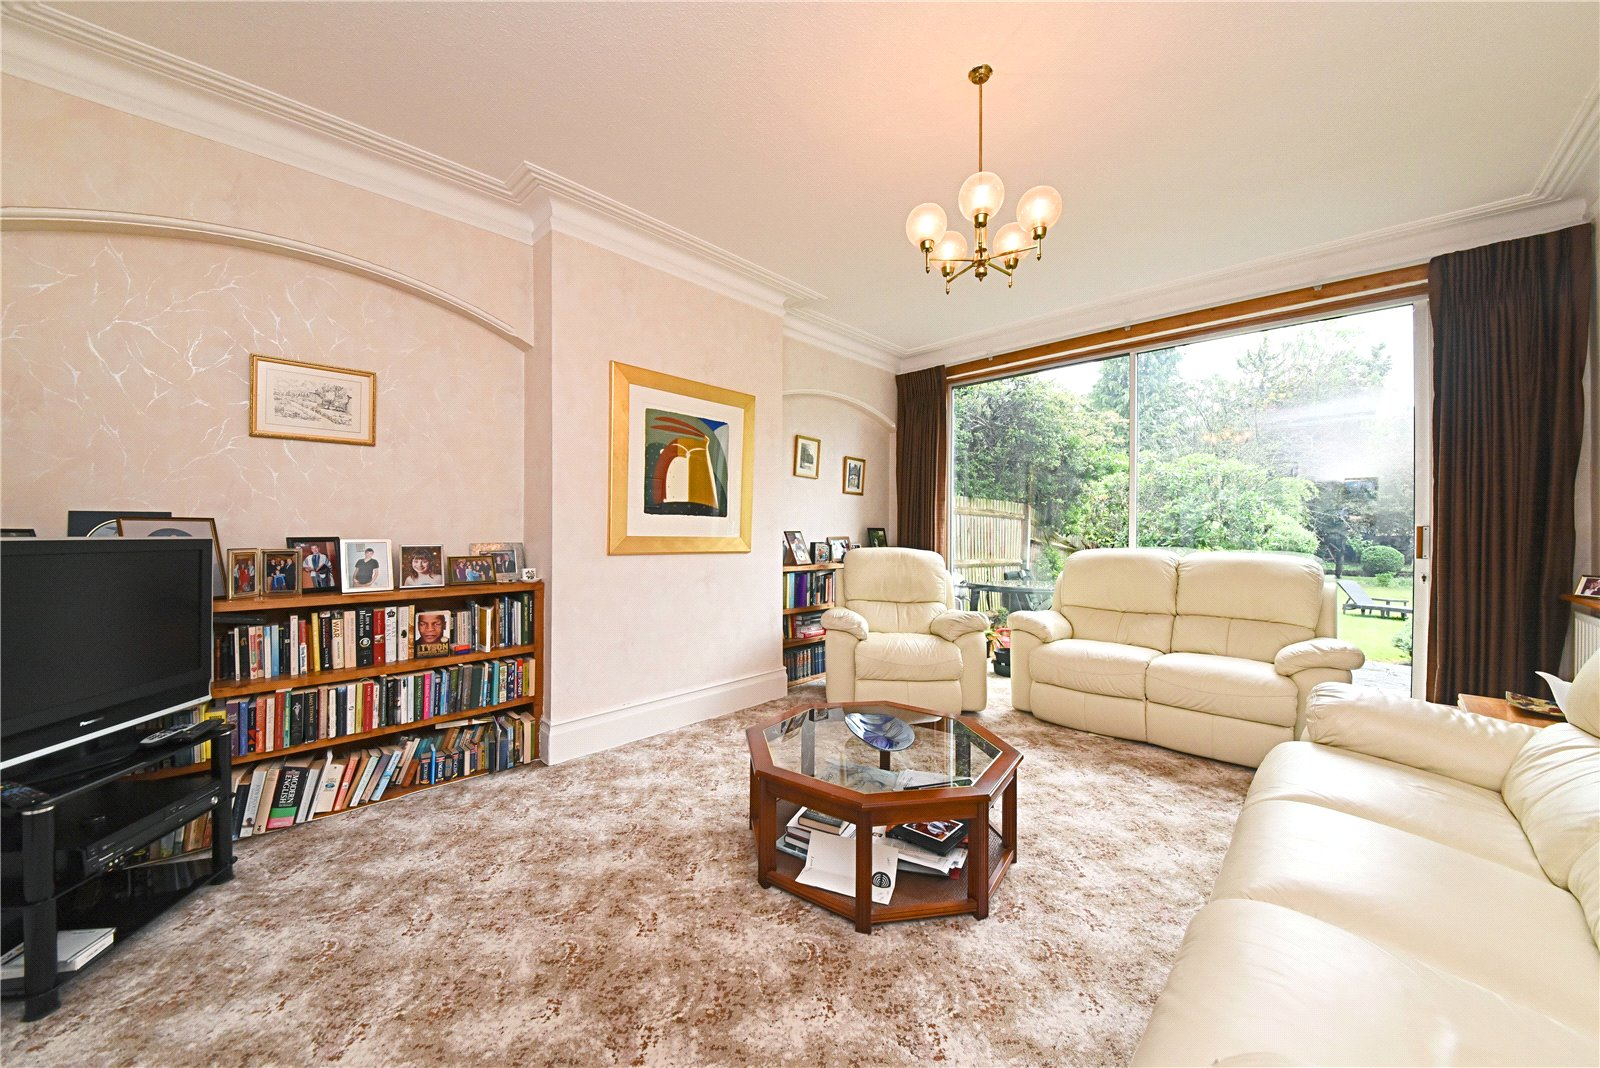 4 bed house for sale in Whetstone, N20 9ED 1